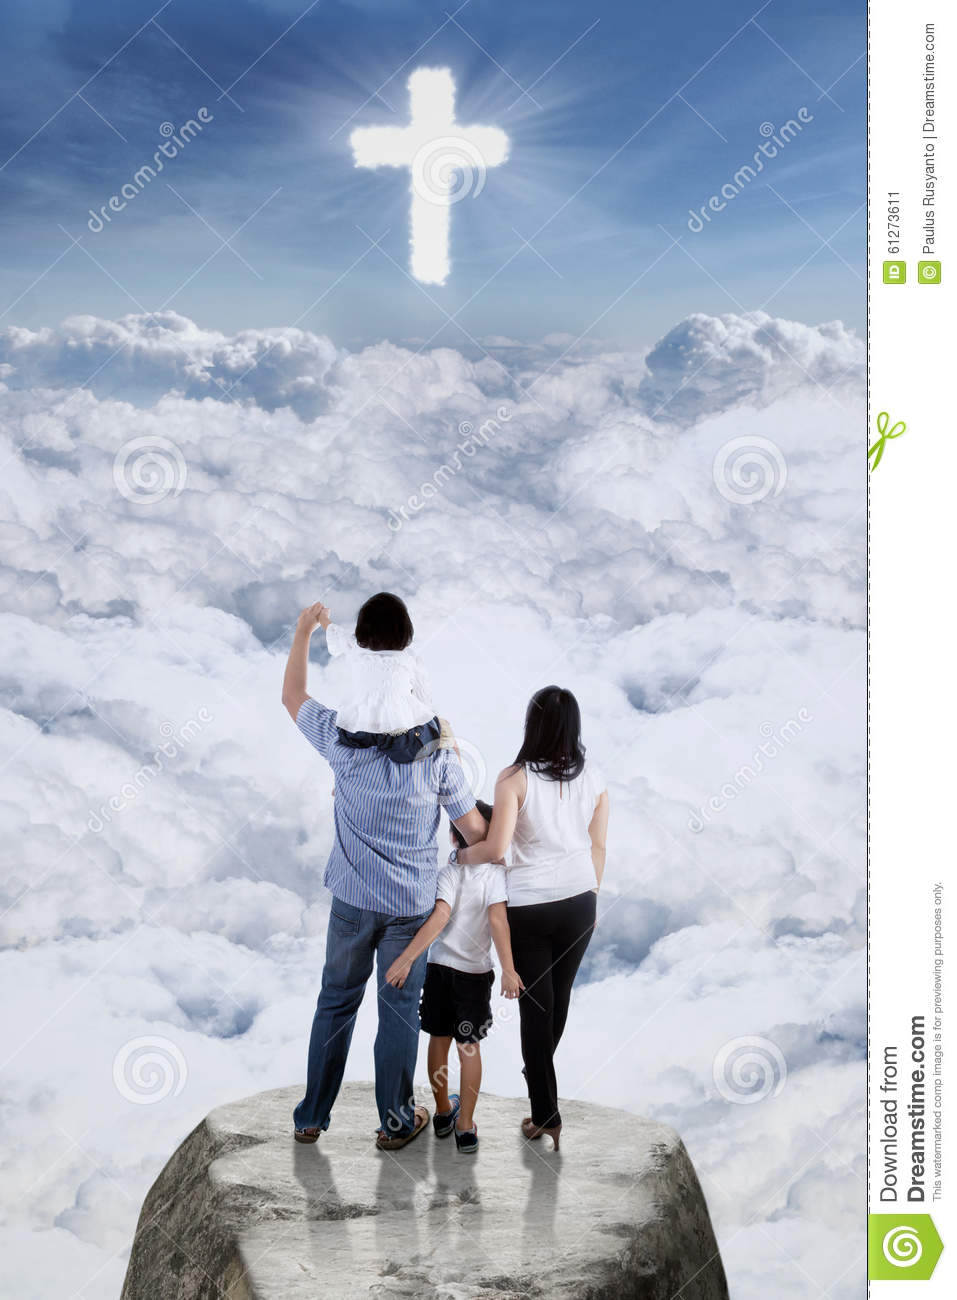 Family On The Cliff And Looking At The Cross Sign Stock Image  Image 61273611